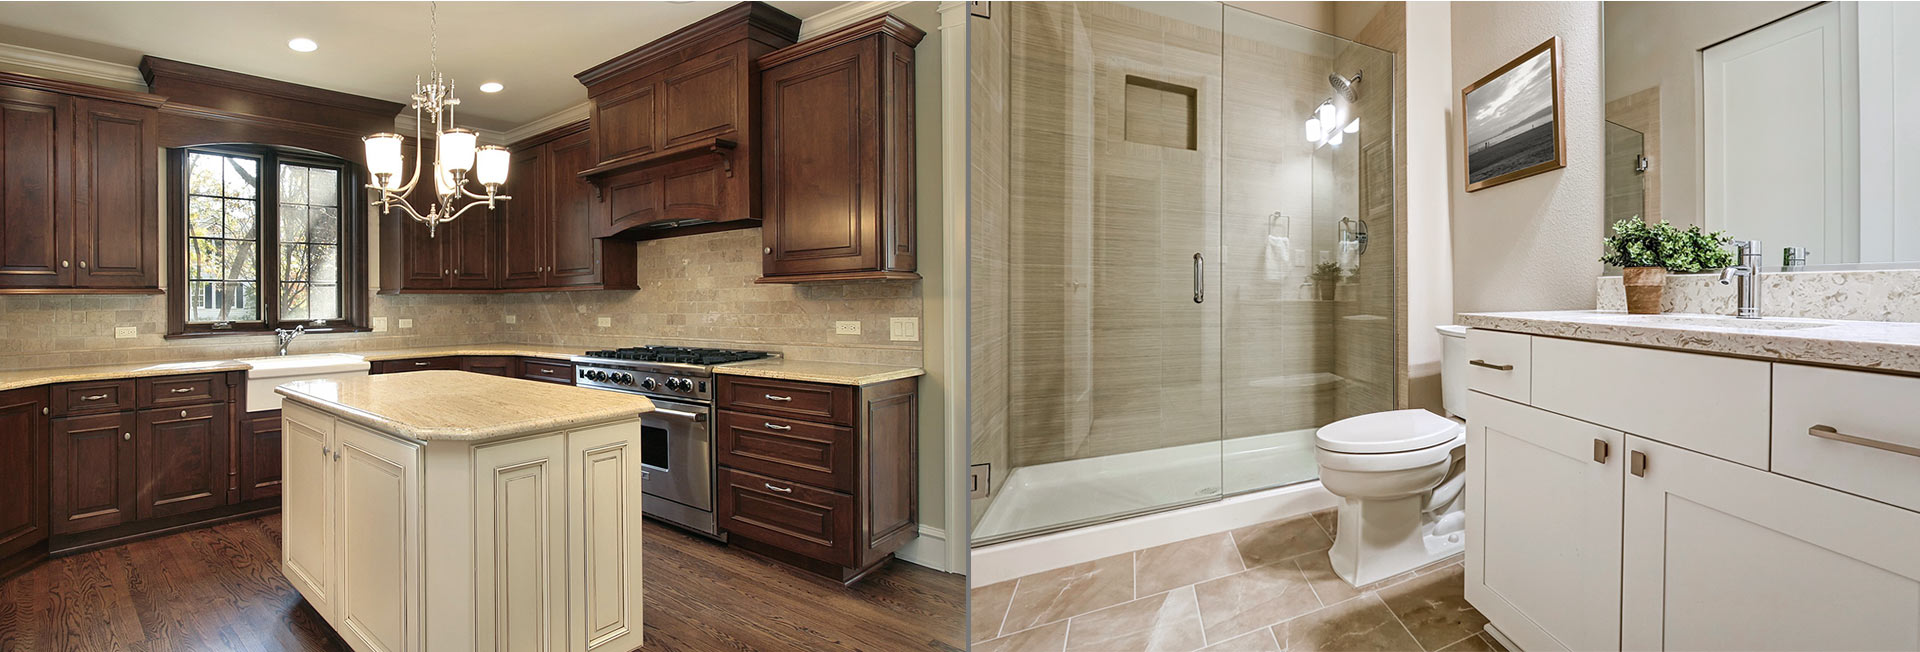 Plymouth Cabinetry Design